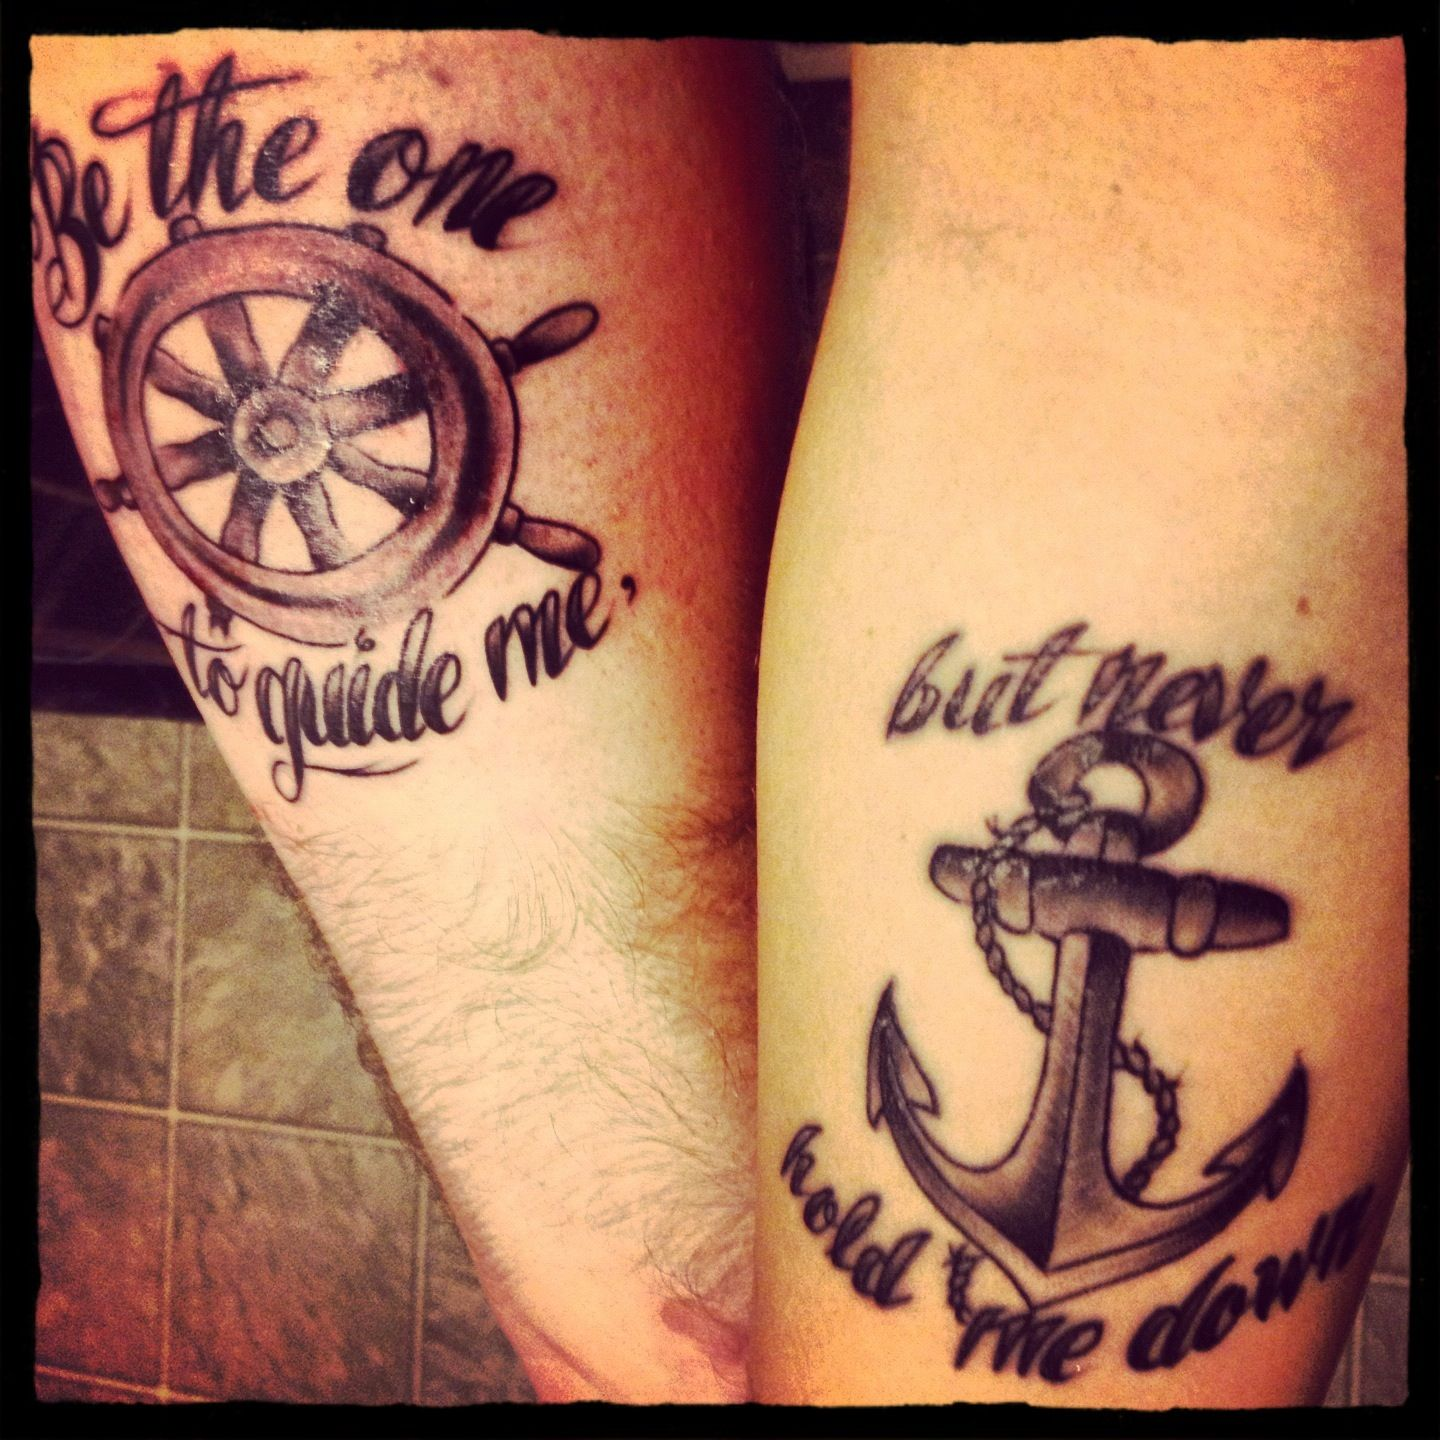 Great cover up tattoo ideas i loveeeee this ideaybe with a compass instead either way